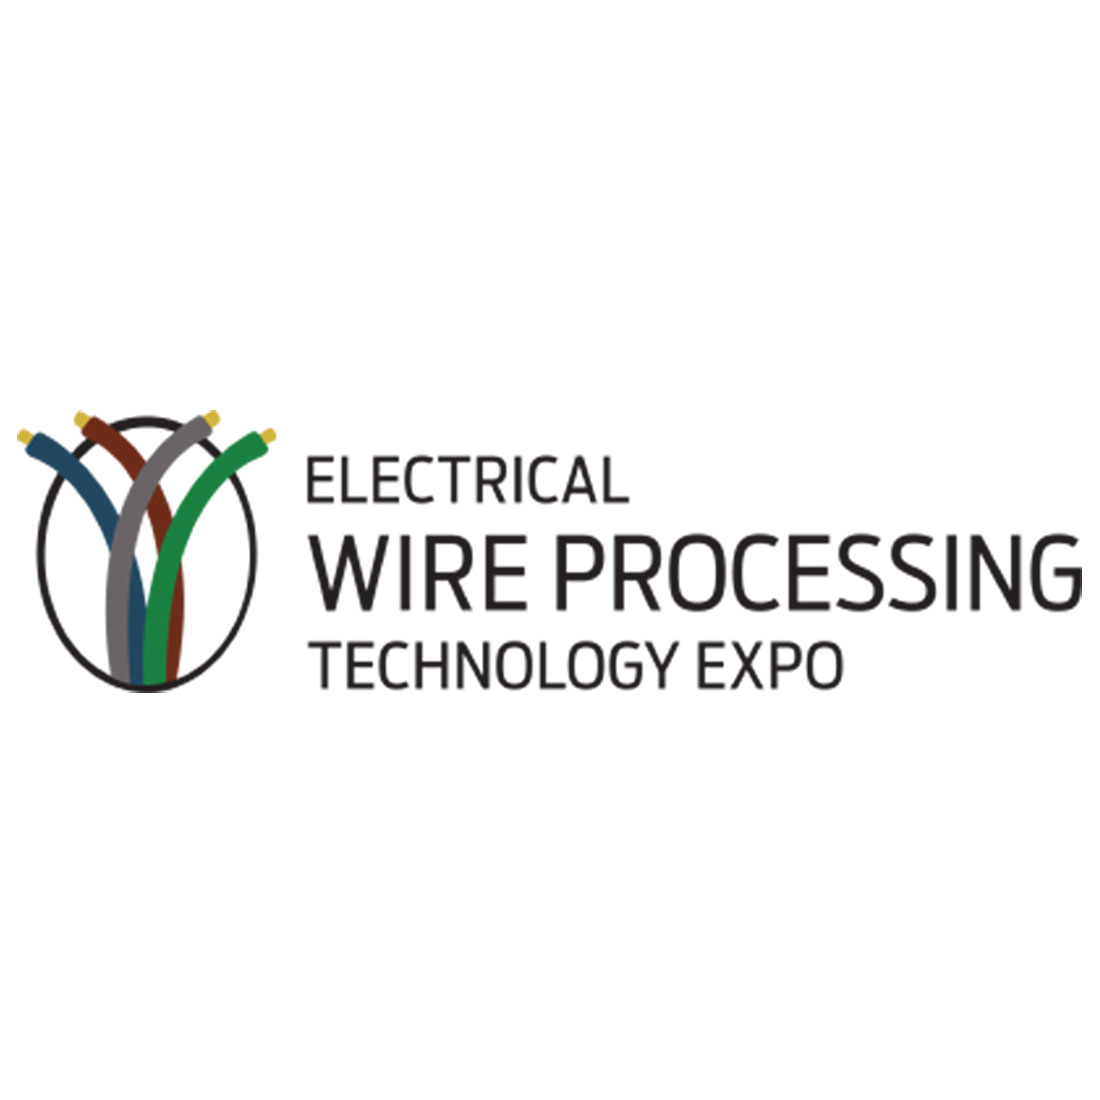 Electrical Wire Processing Technology Expo